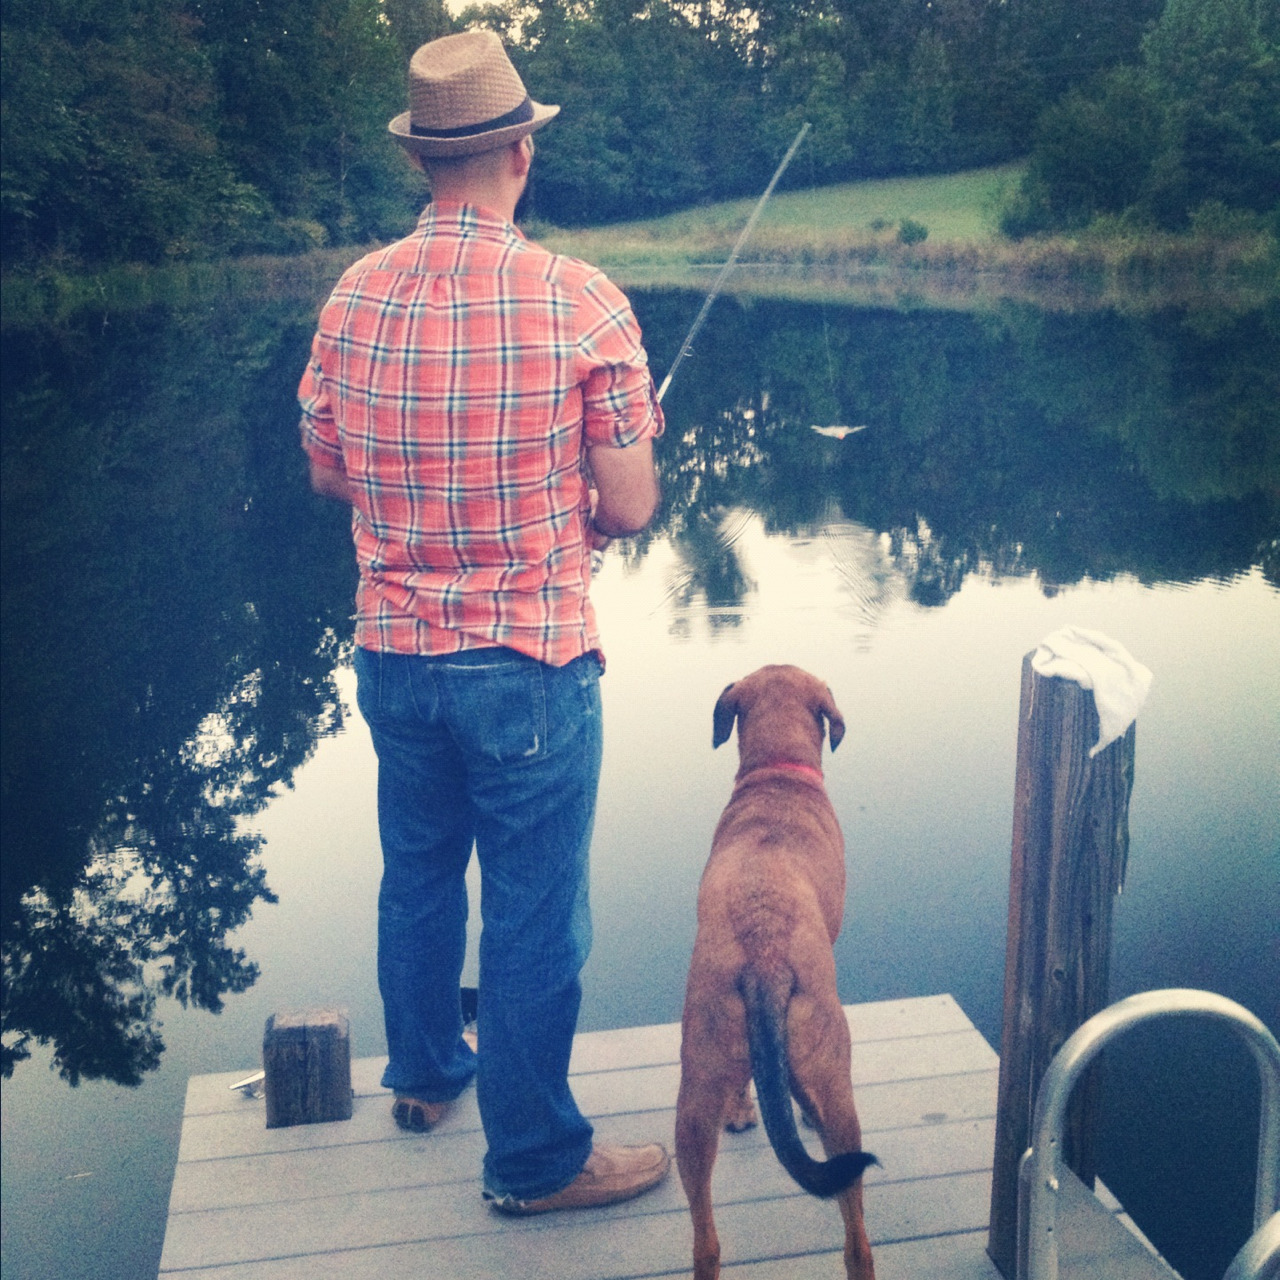 Milo LOVES fishing. He watches that bobber like a hawk!